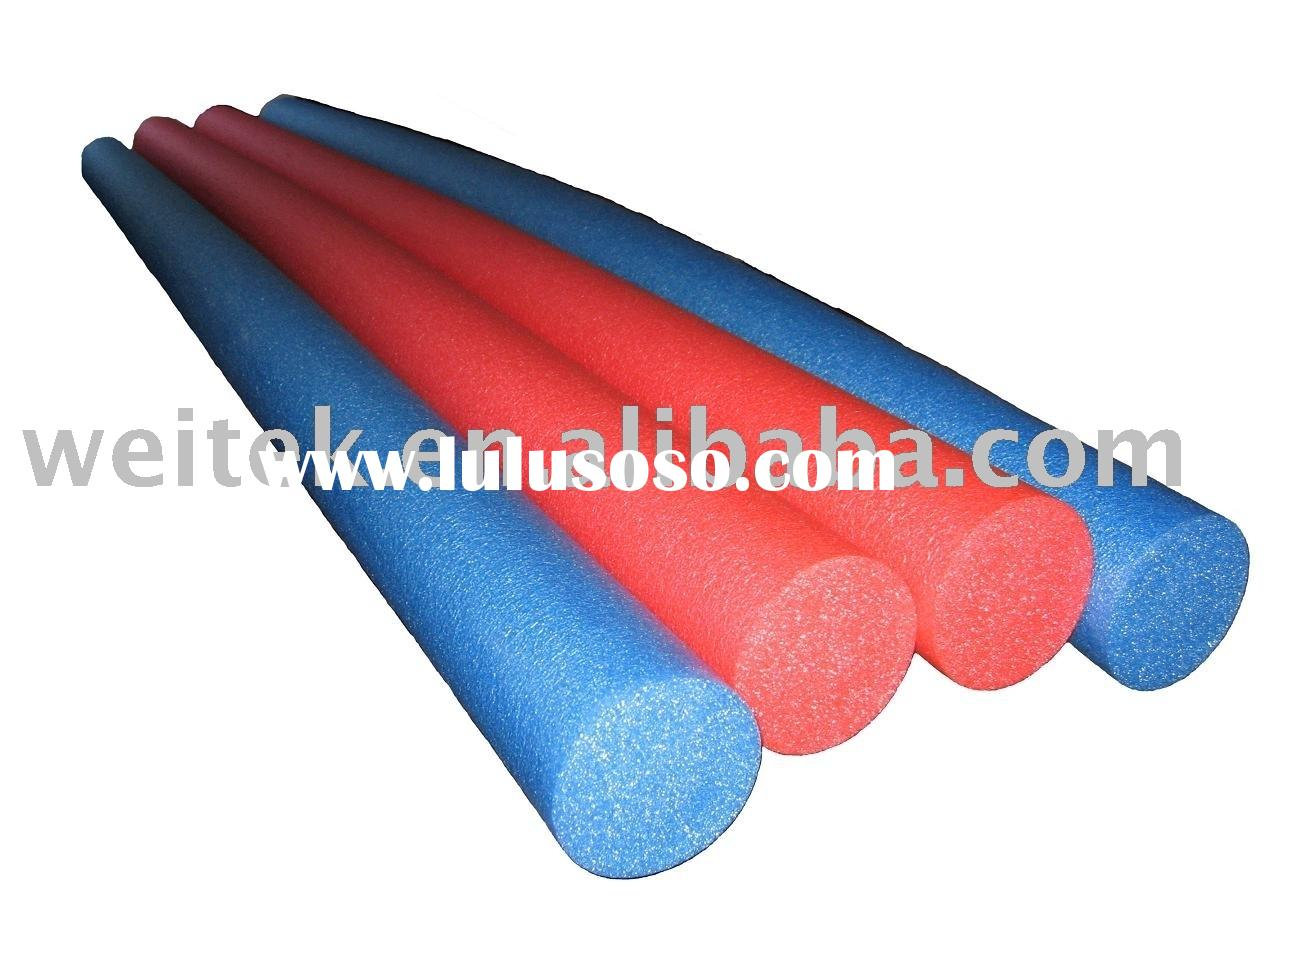 Flexible swim noodle float,Swimming Noodles,Water Noodles